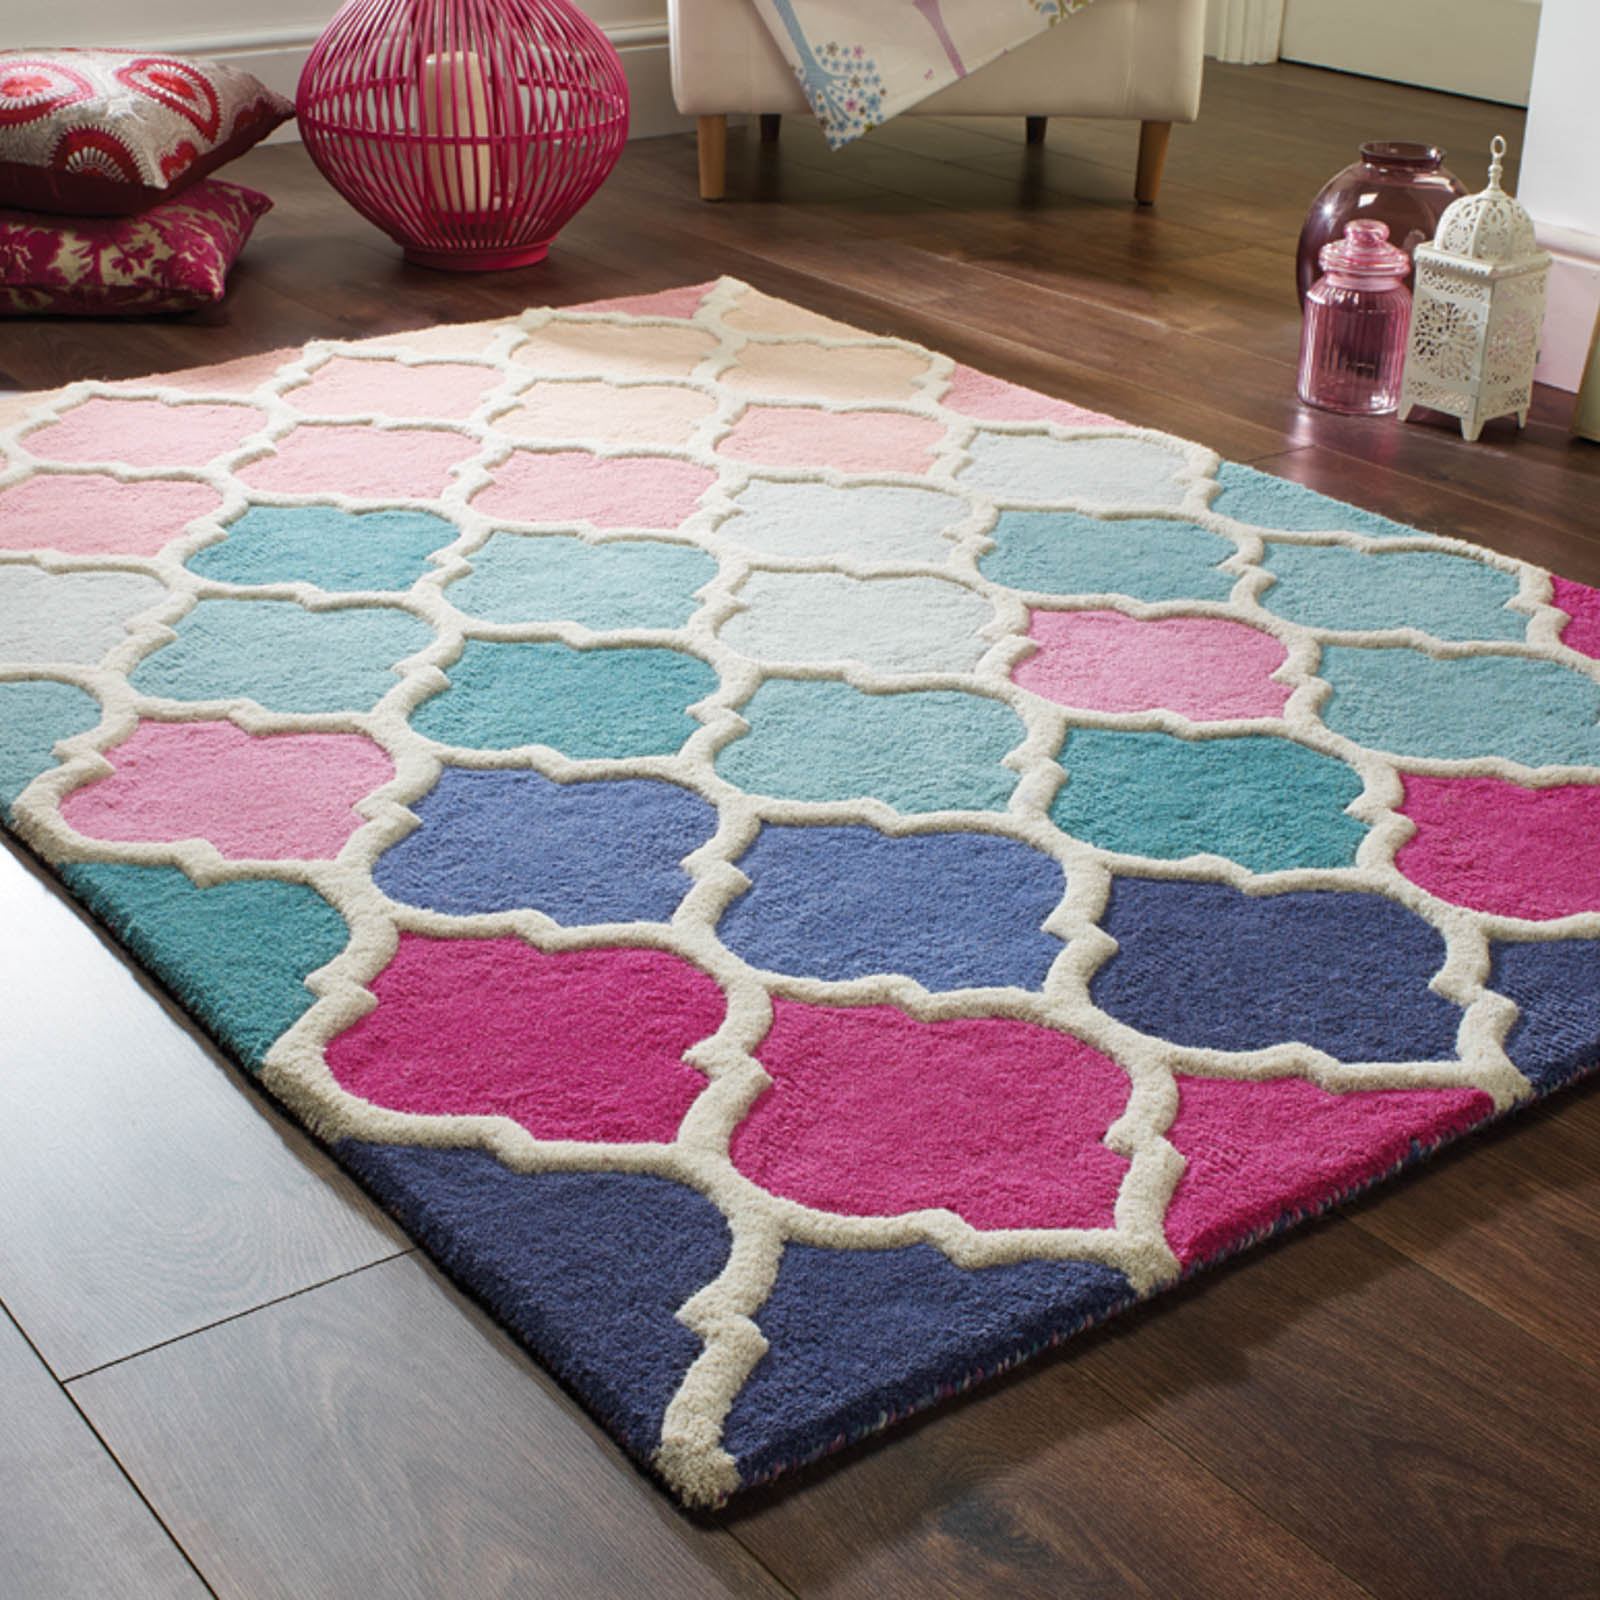 Illusion Rosella Rugs In Pink And Blue Free Uk Delivery